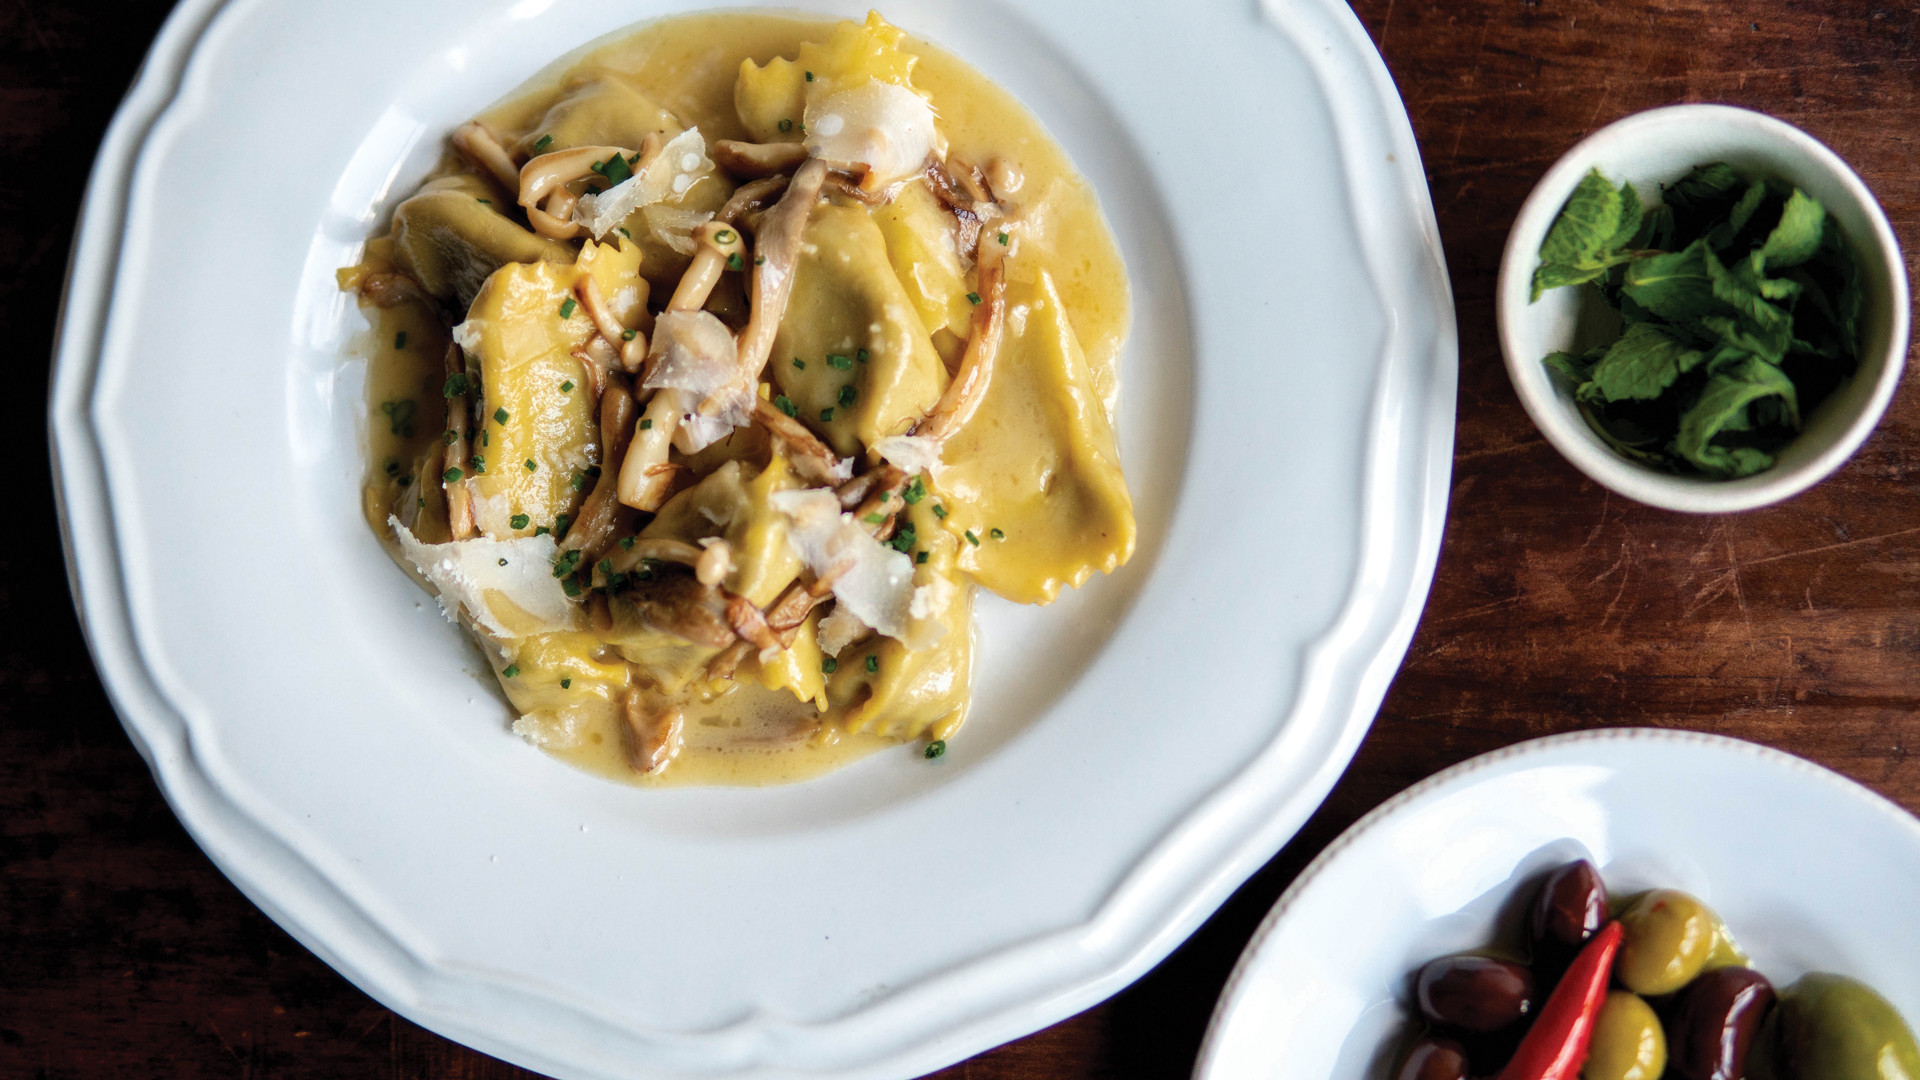 The best Italian restaurants in Toronto for pasta | Mushroom agnolotti at Ufficio on Dundas West